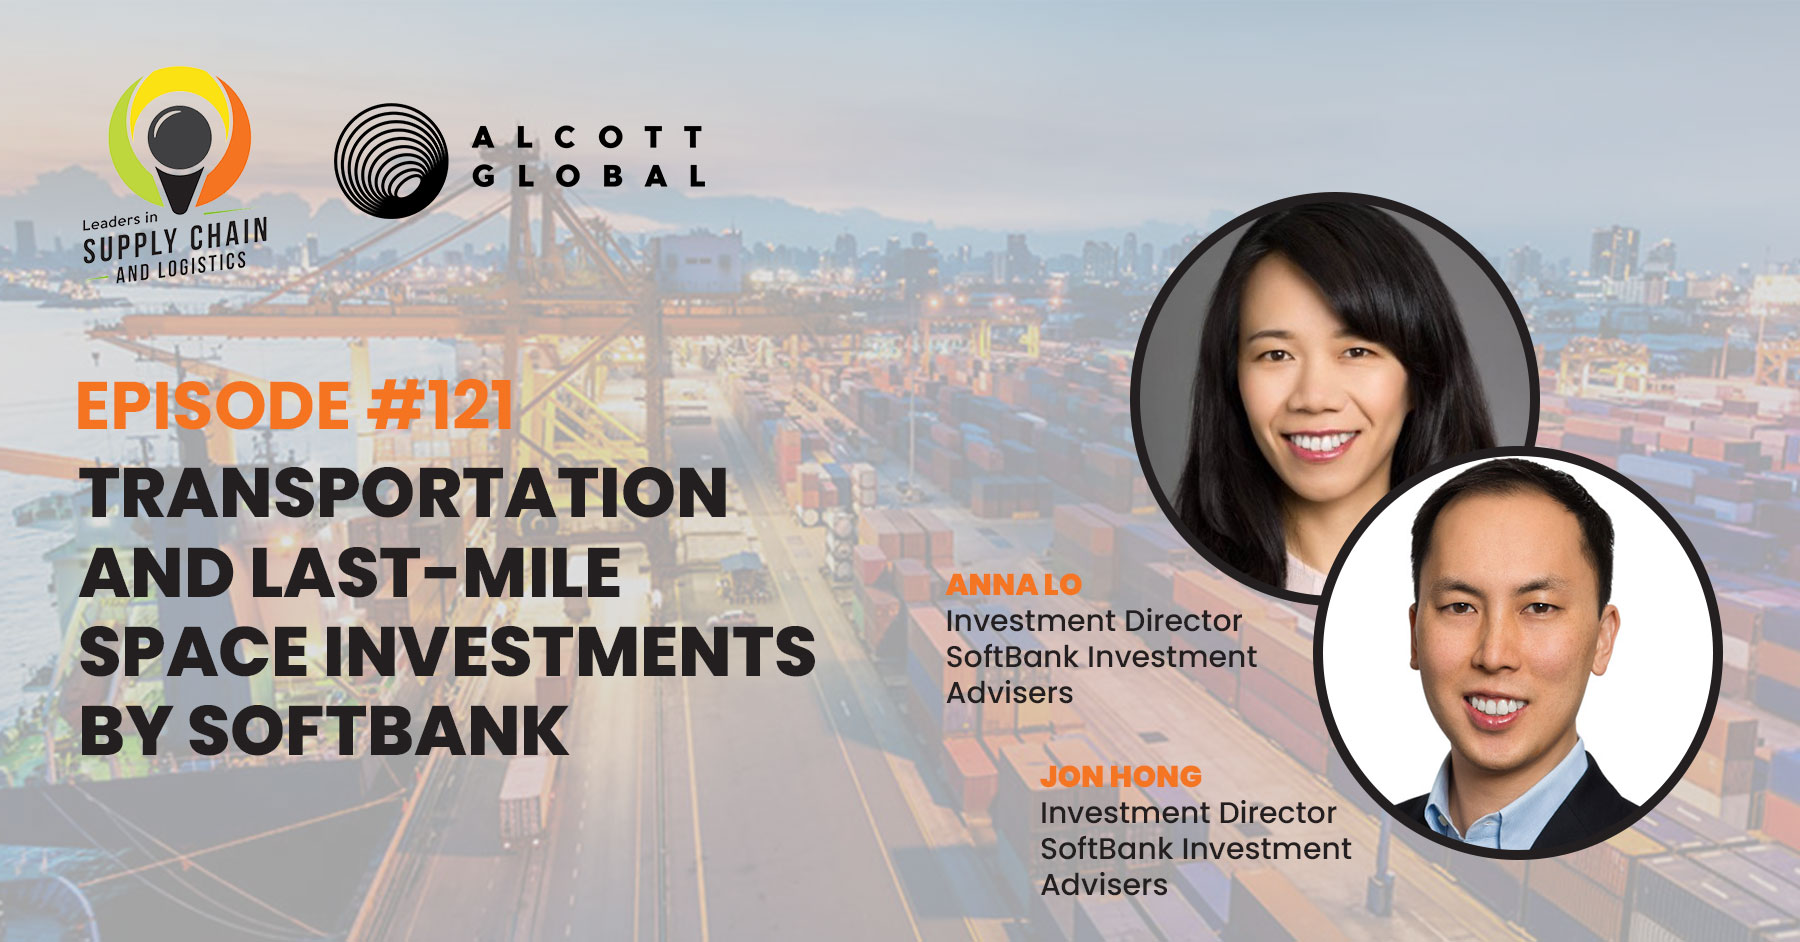 #121: Transportation and Last-mileSpace Investments by SoftBank Featured Image